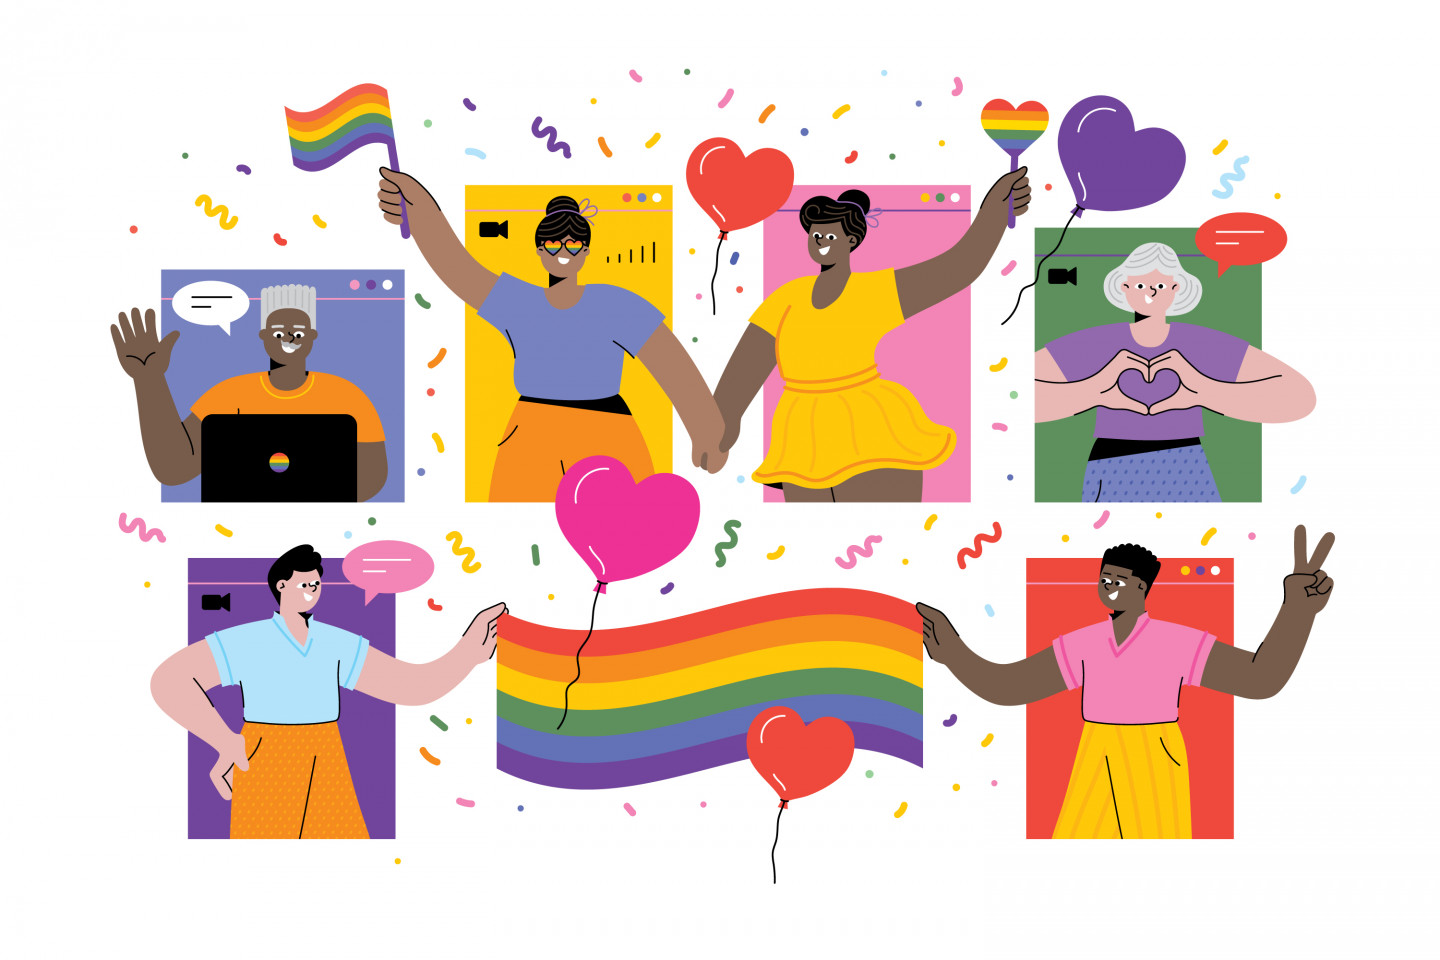 An illustration featuring people in various virtual windows holding LGBT pride flags.